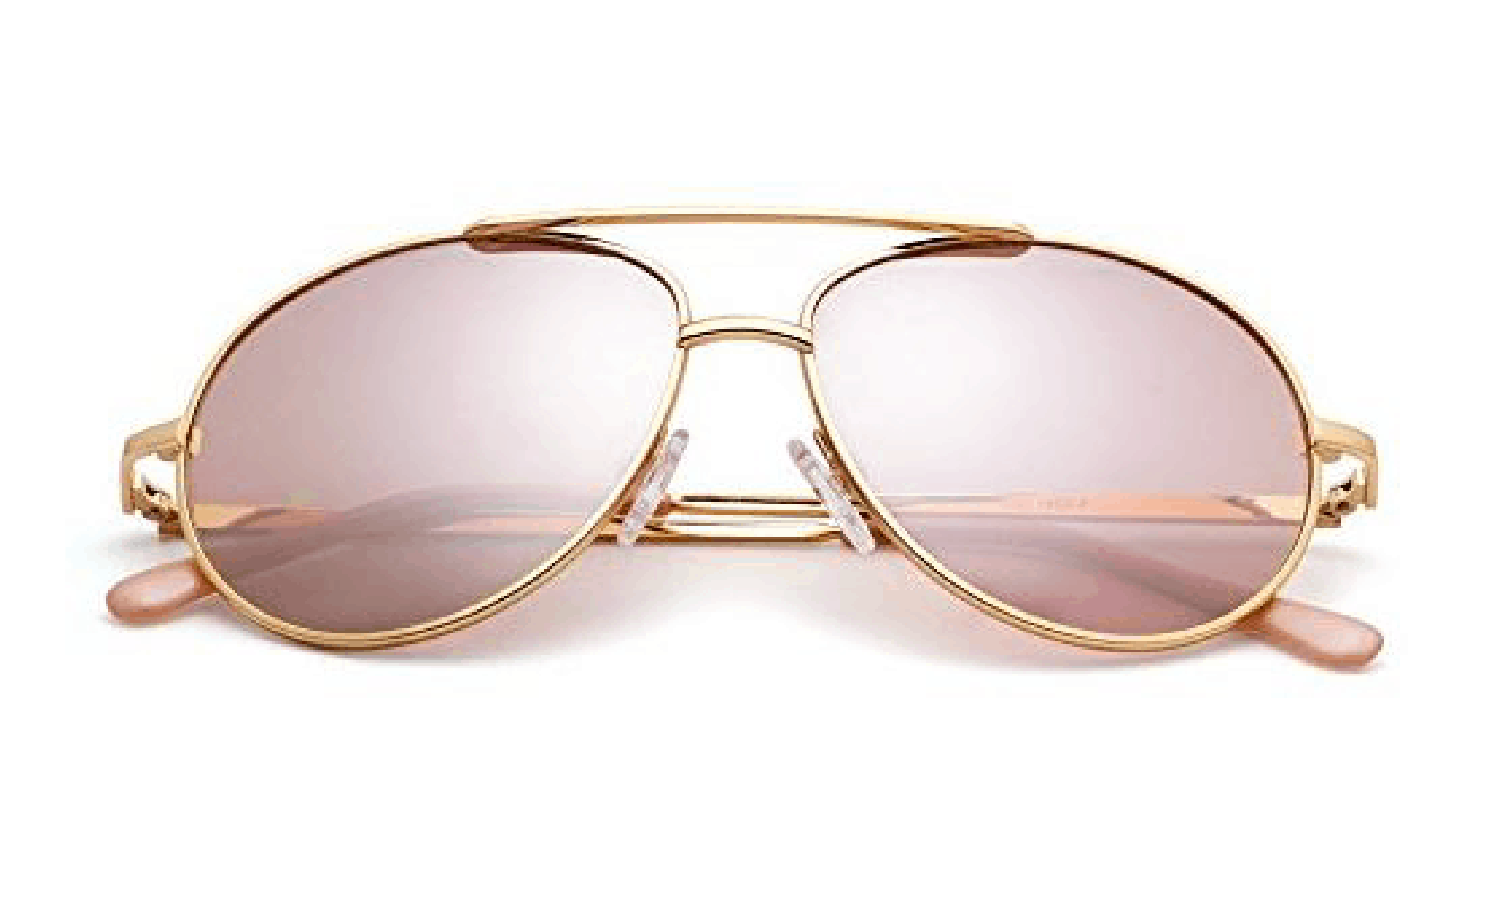 Gold and Light Pink Aviator Sunglasses